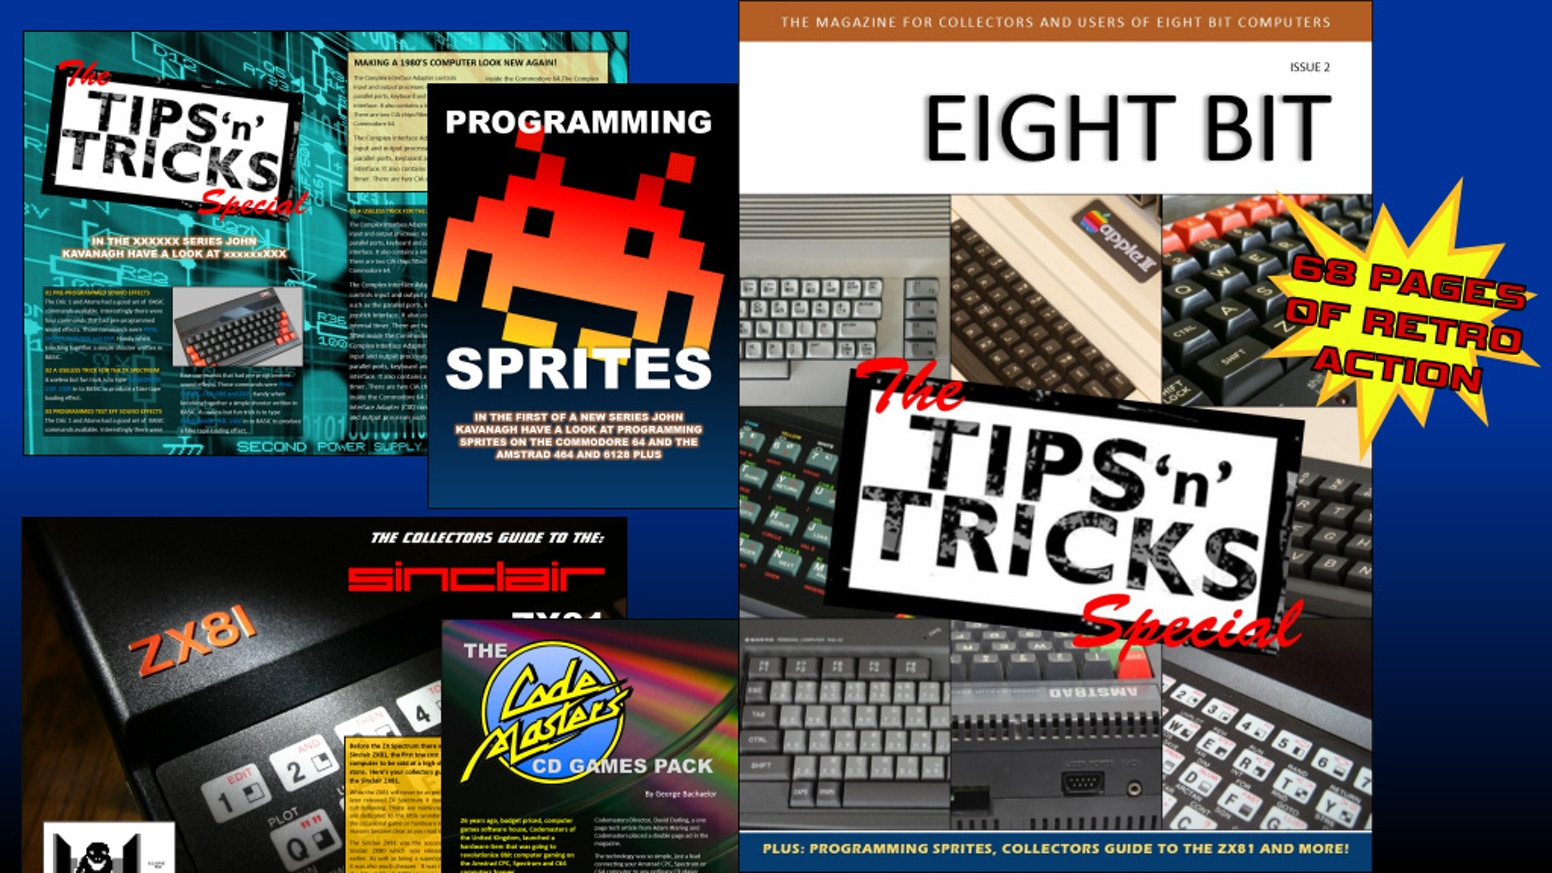 The magazine for 8-bit computer enthusiasts covering classic computers like the Apple II, Commodore 64, CPC, Sinclair Spectrum and more